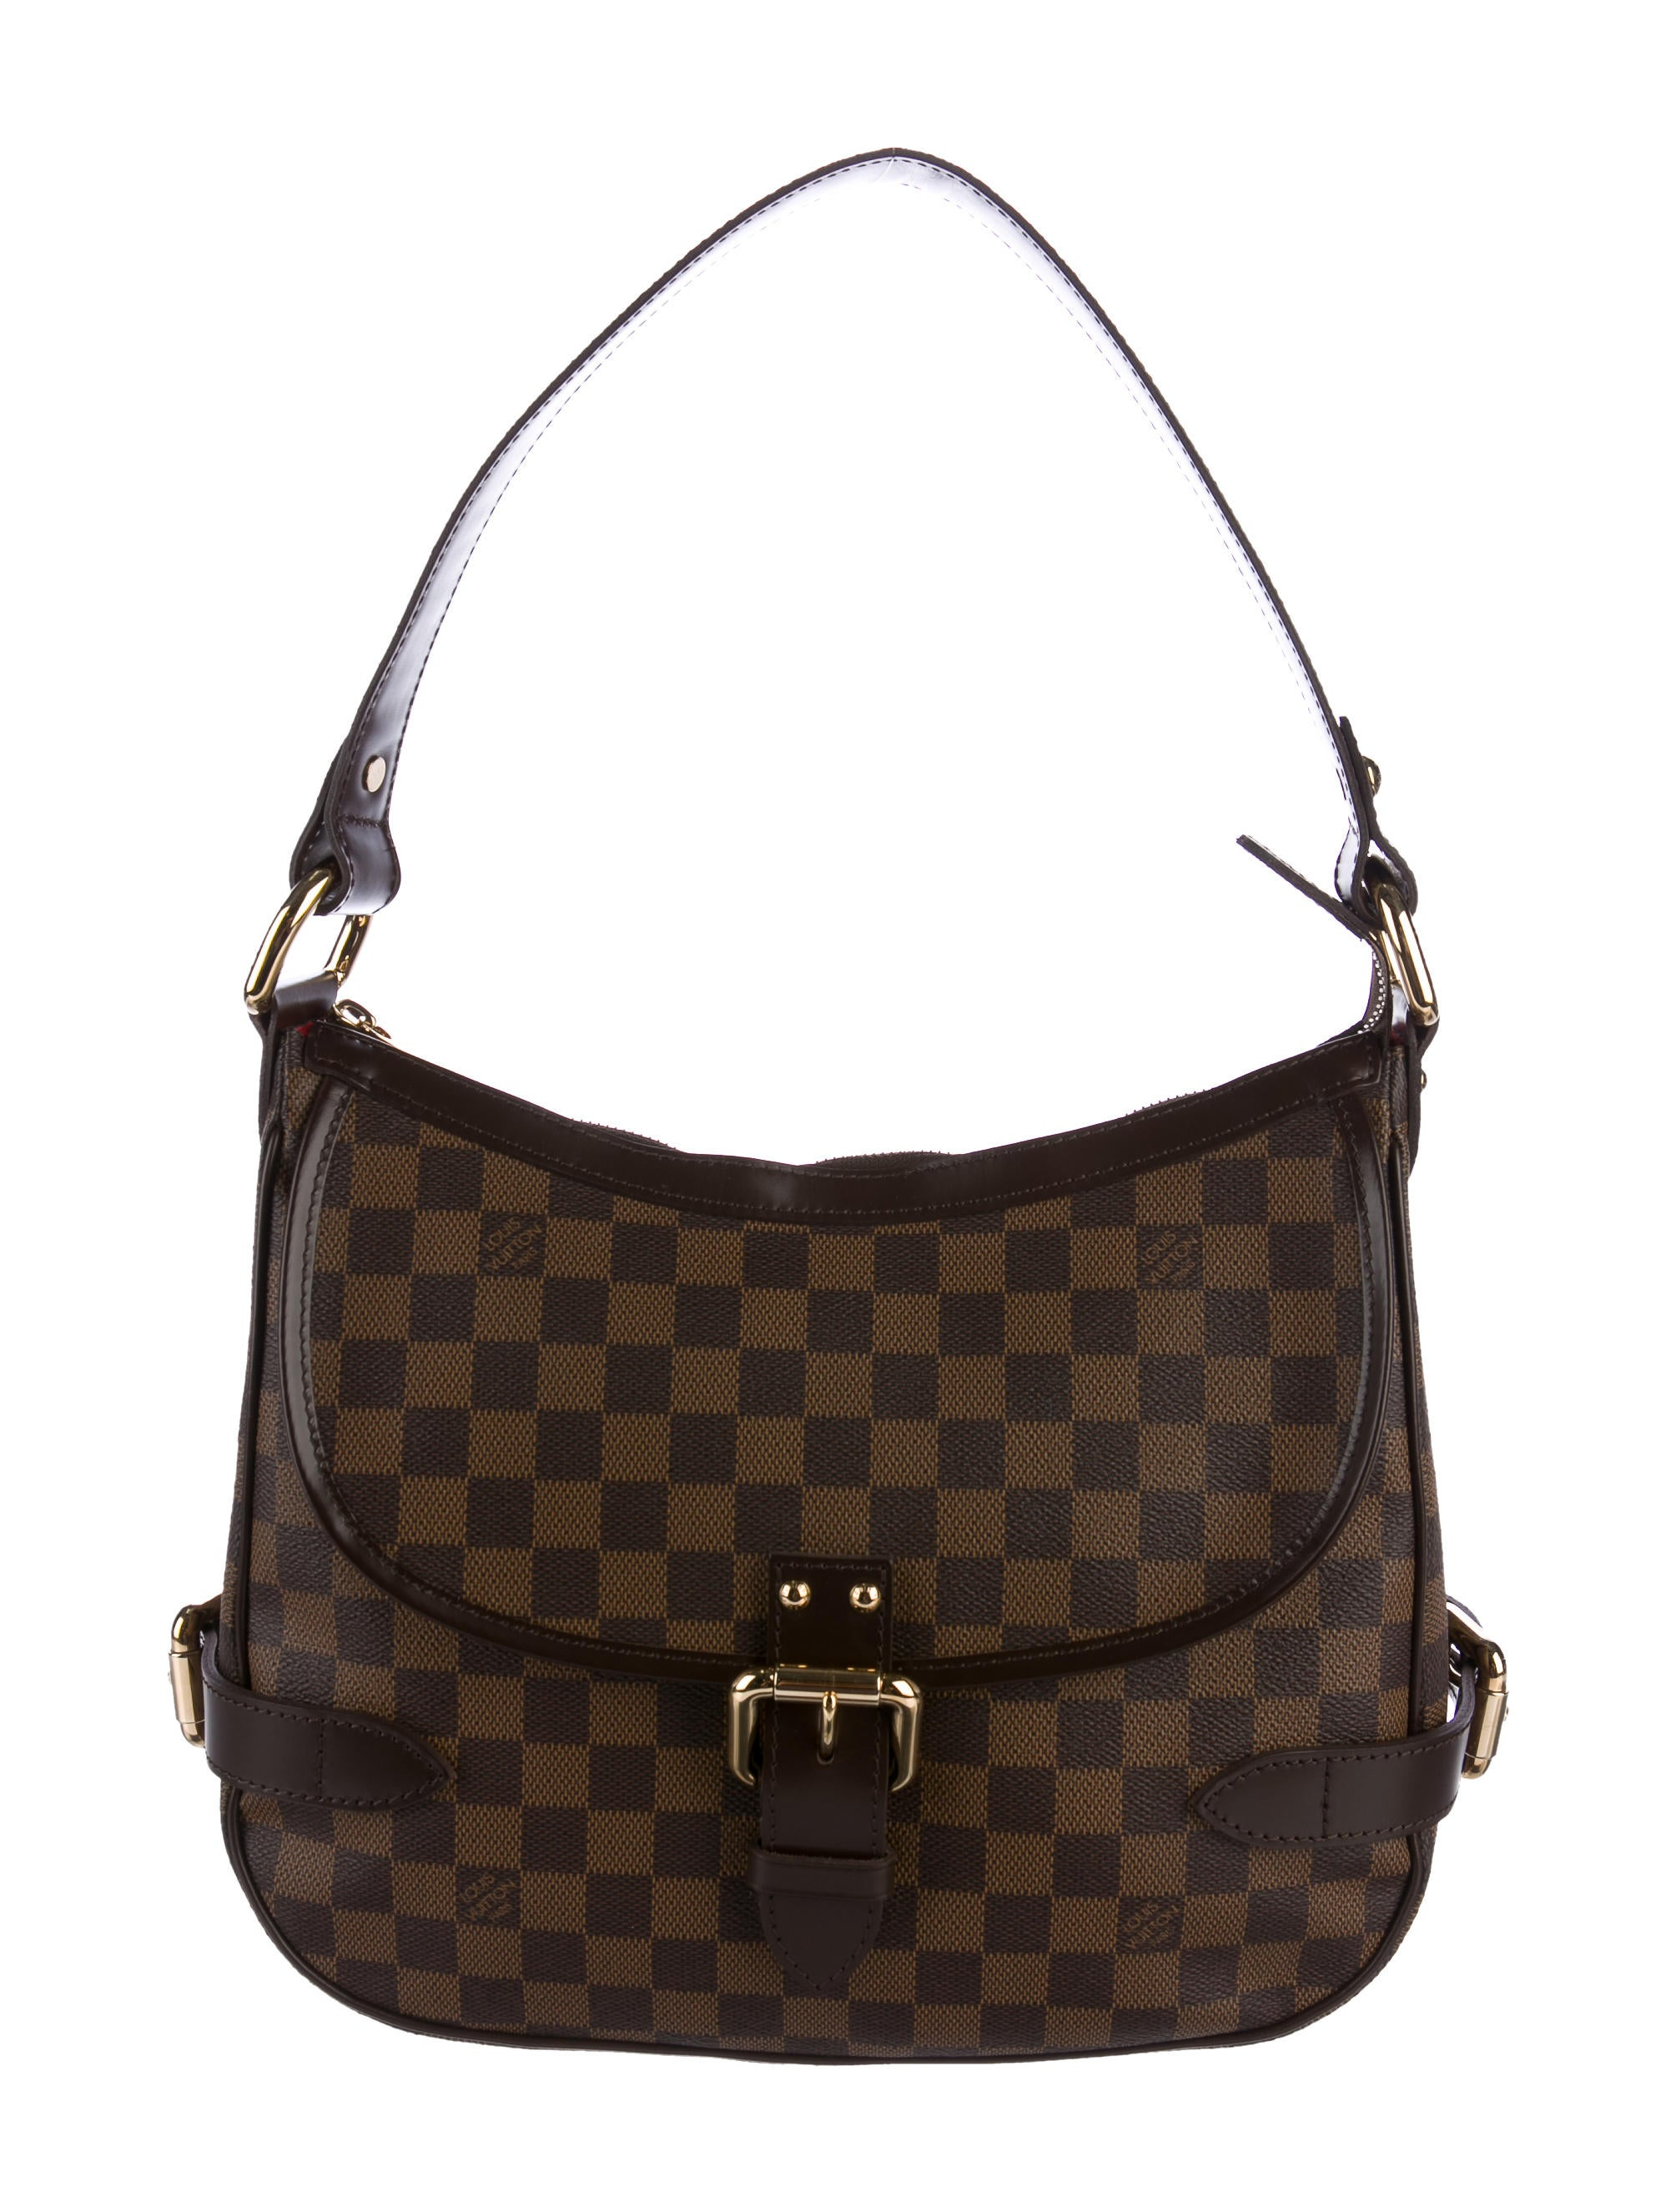 Louis vuitton damier ebene highbury bag handbags for Louis vuitton miroir bags